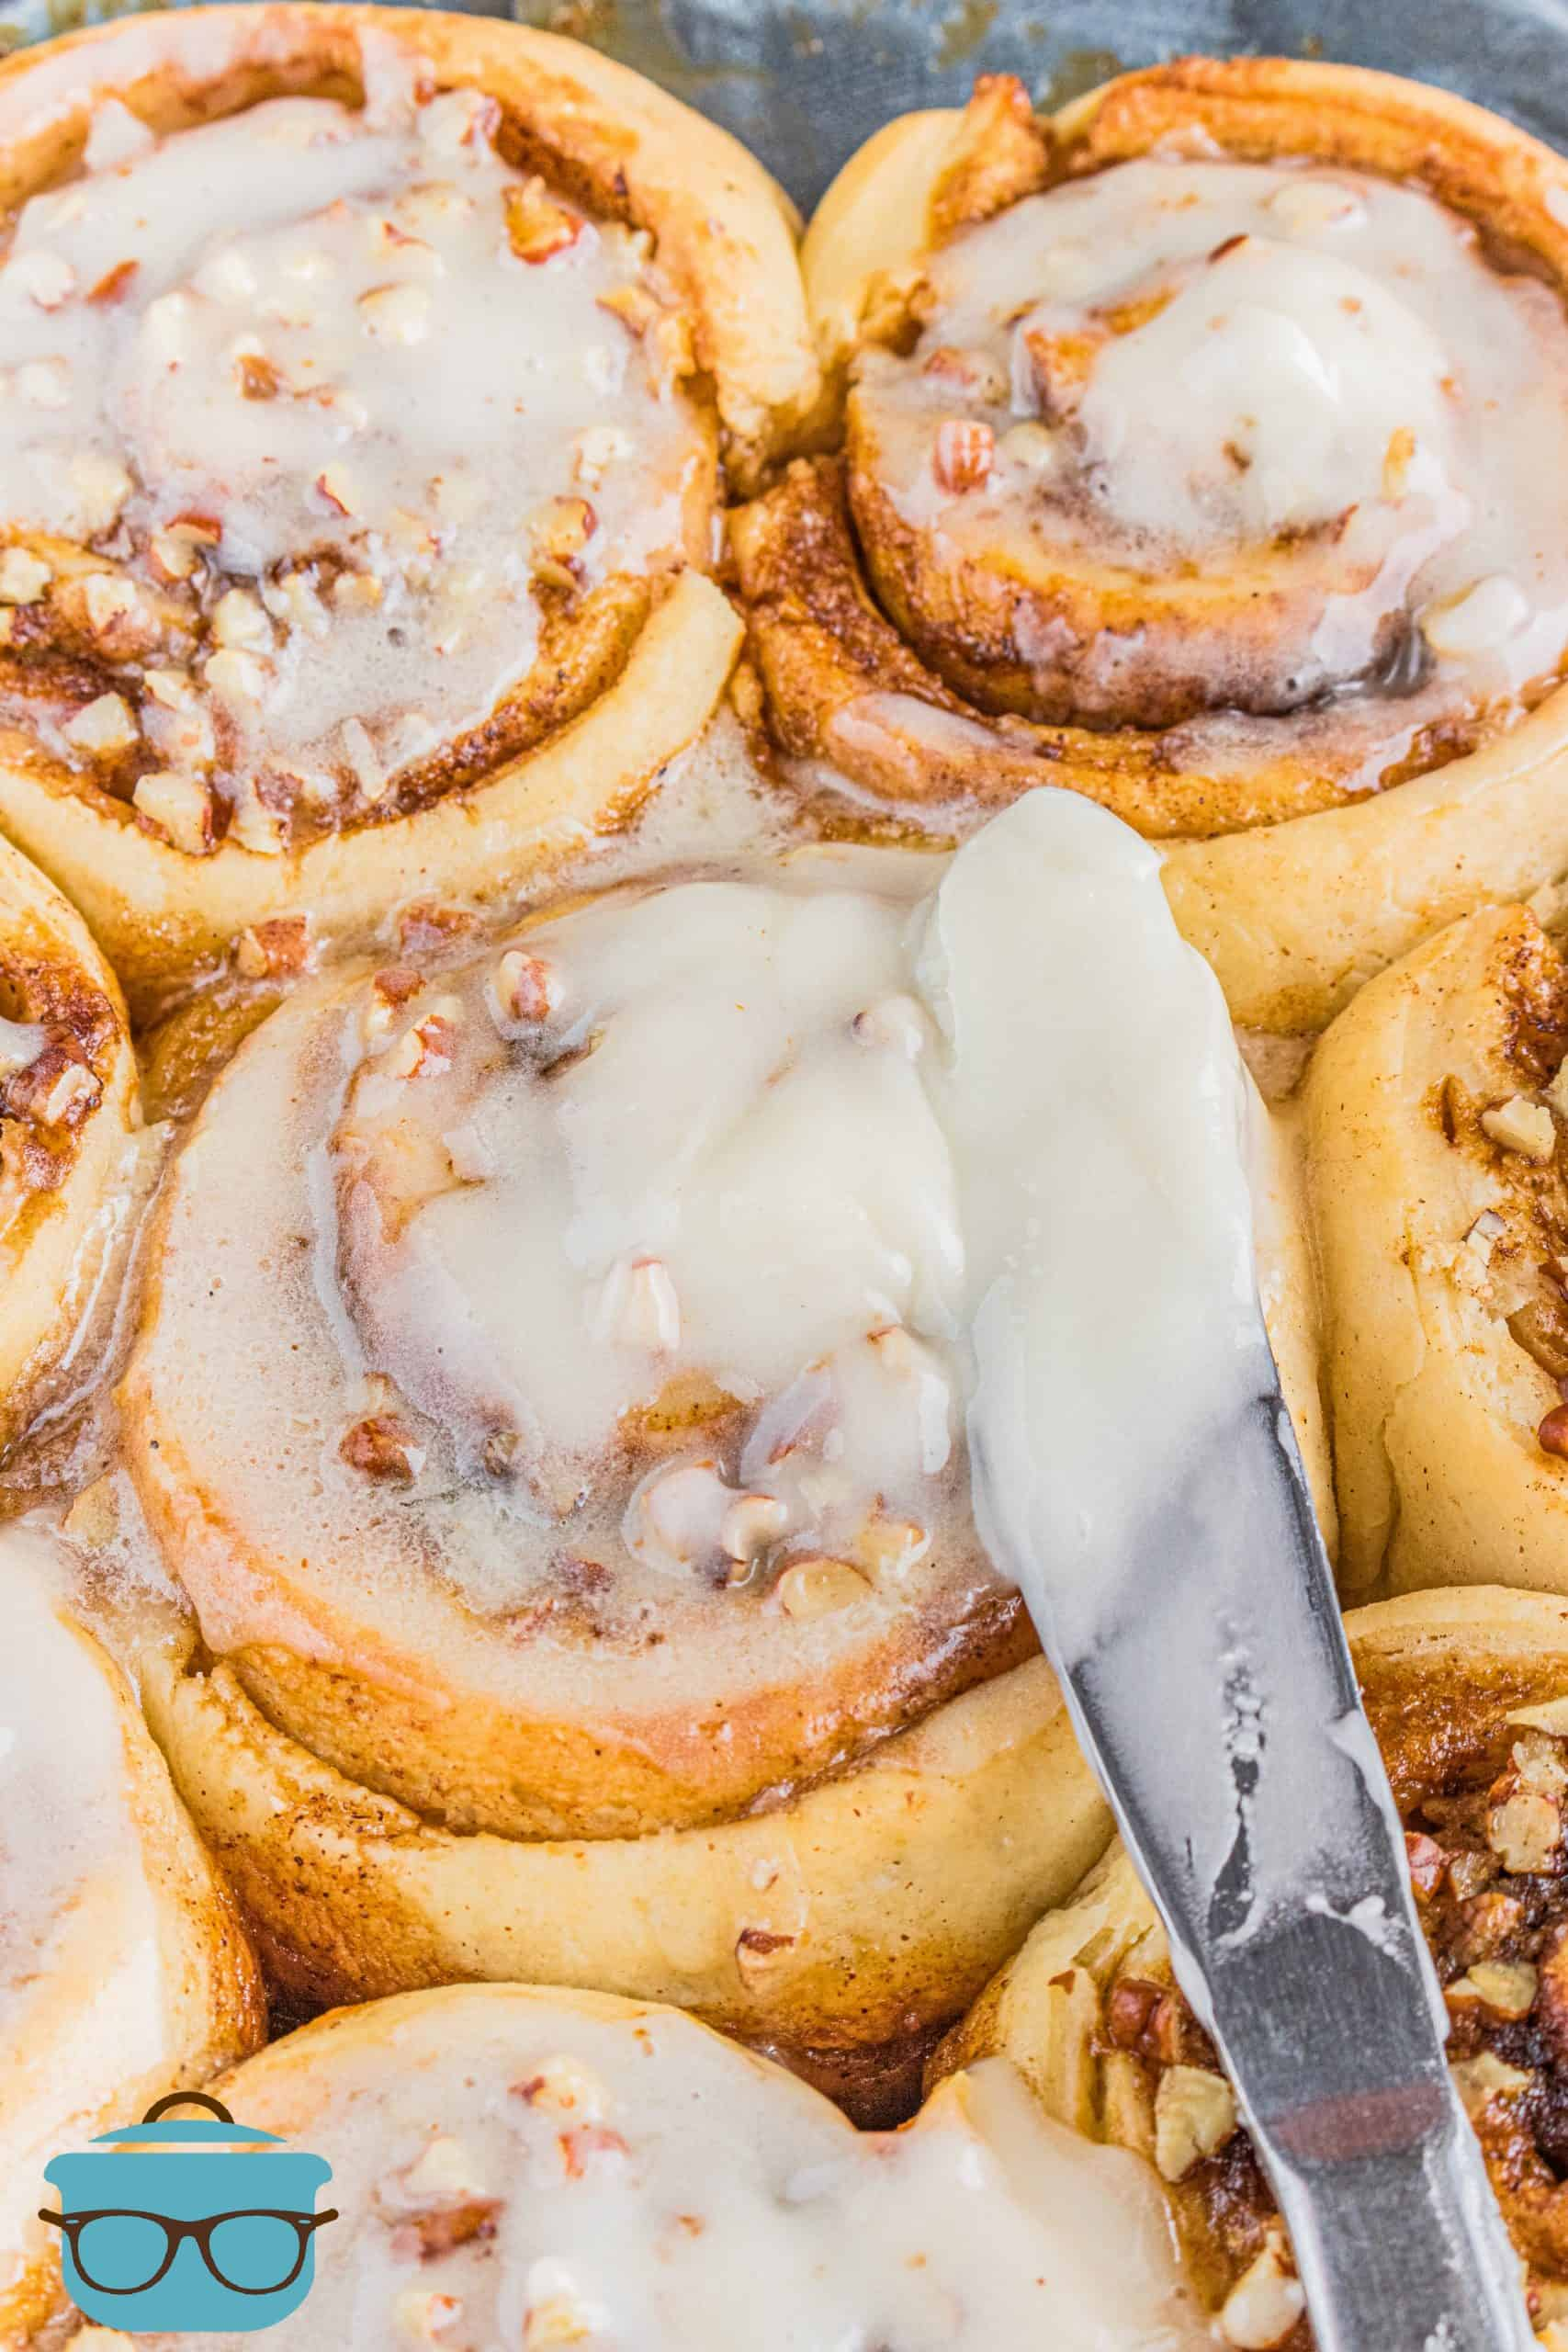 cream cheese frosting spread onto cinnamon rolls with a butter knife